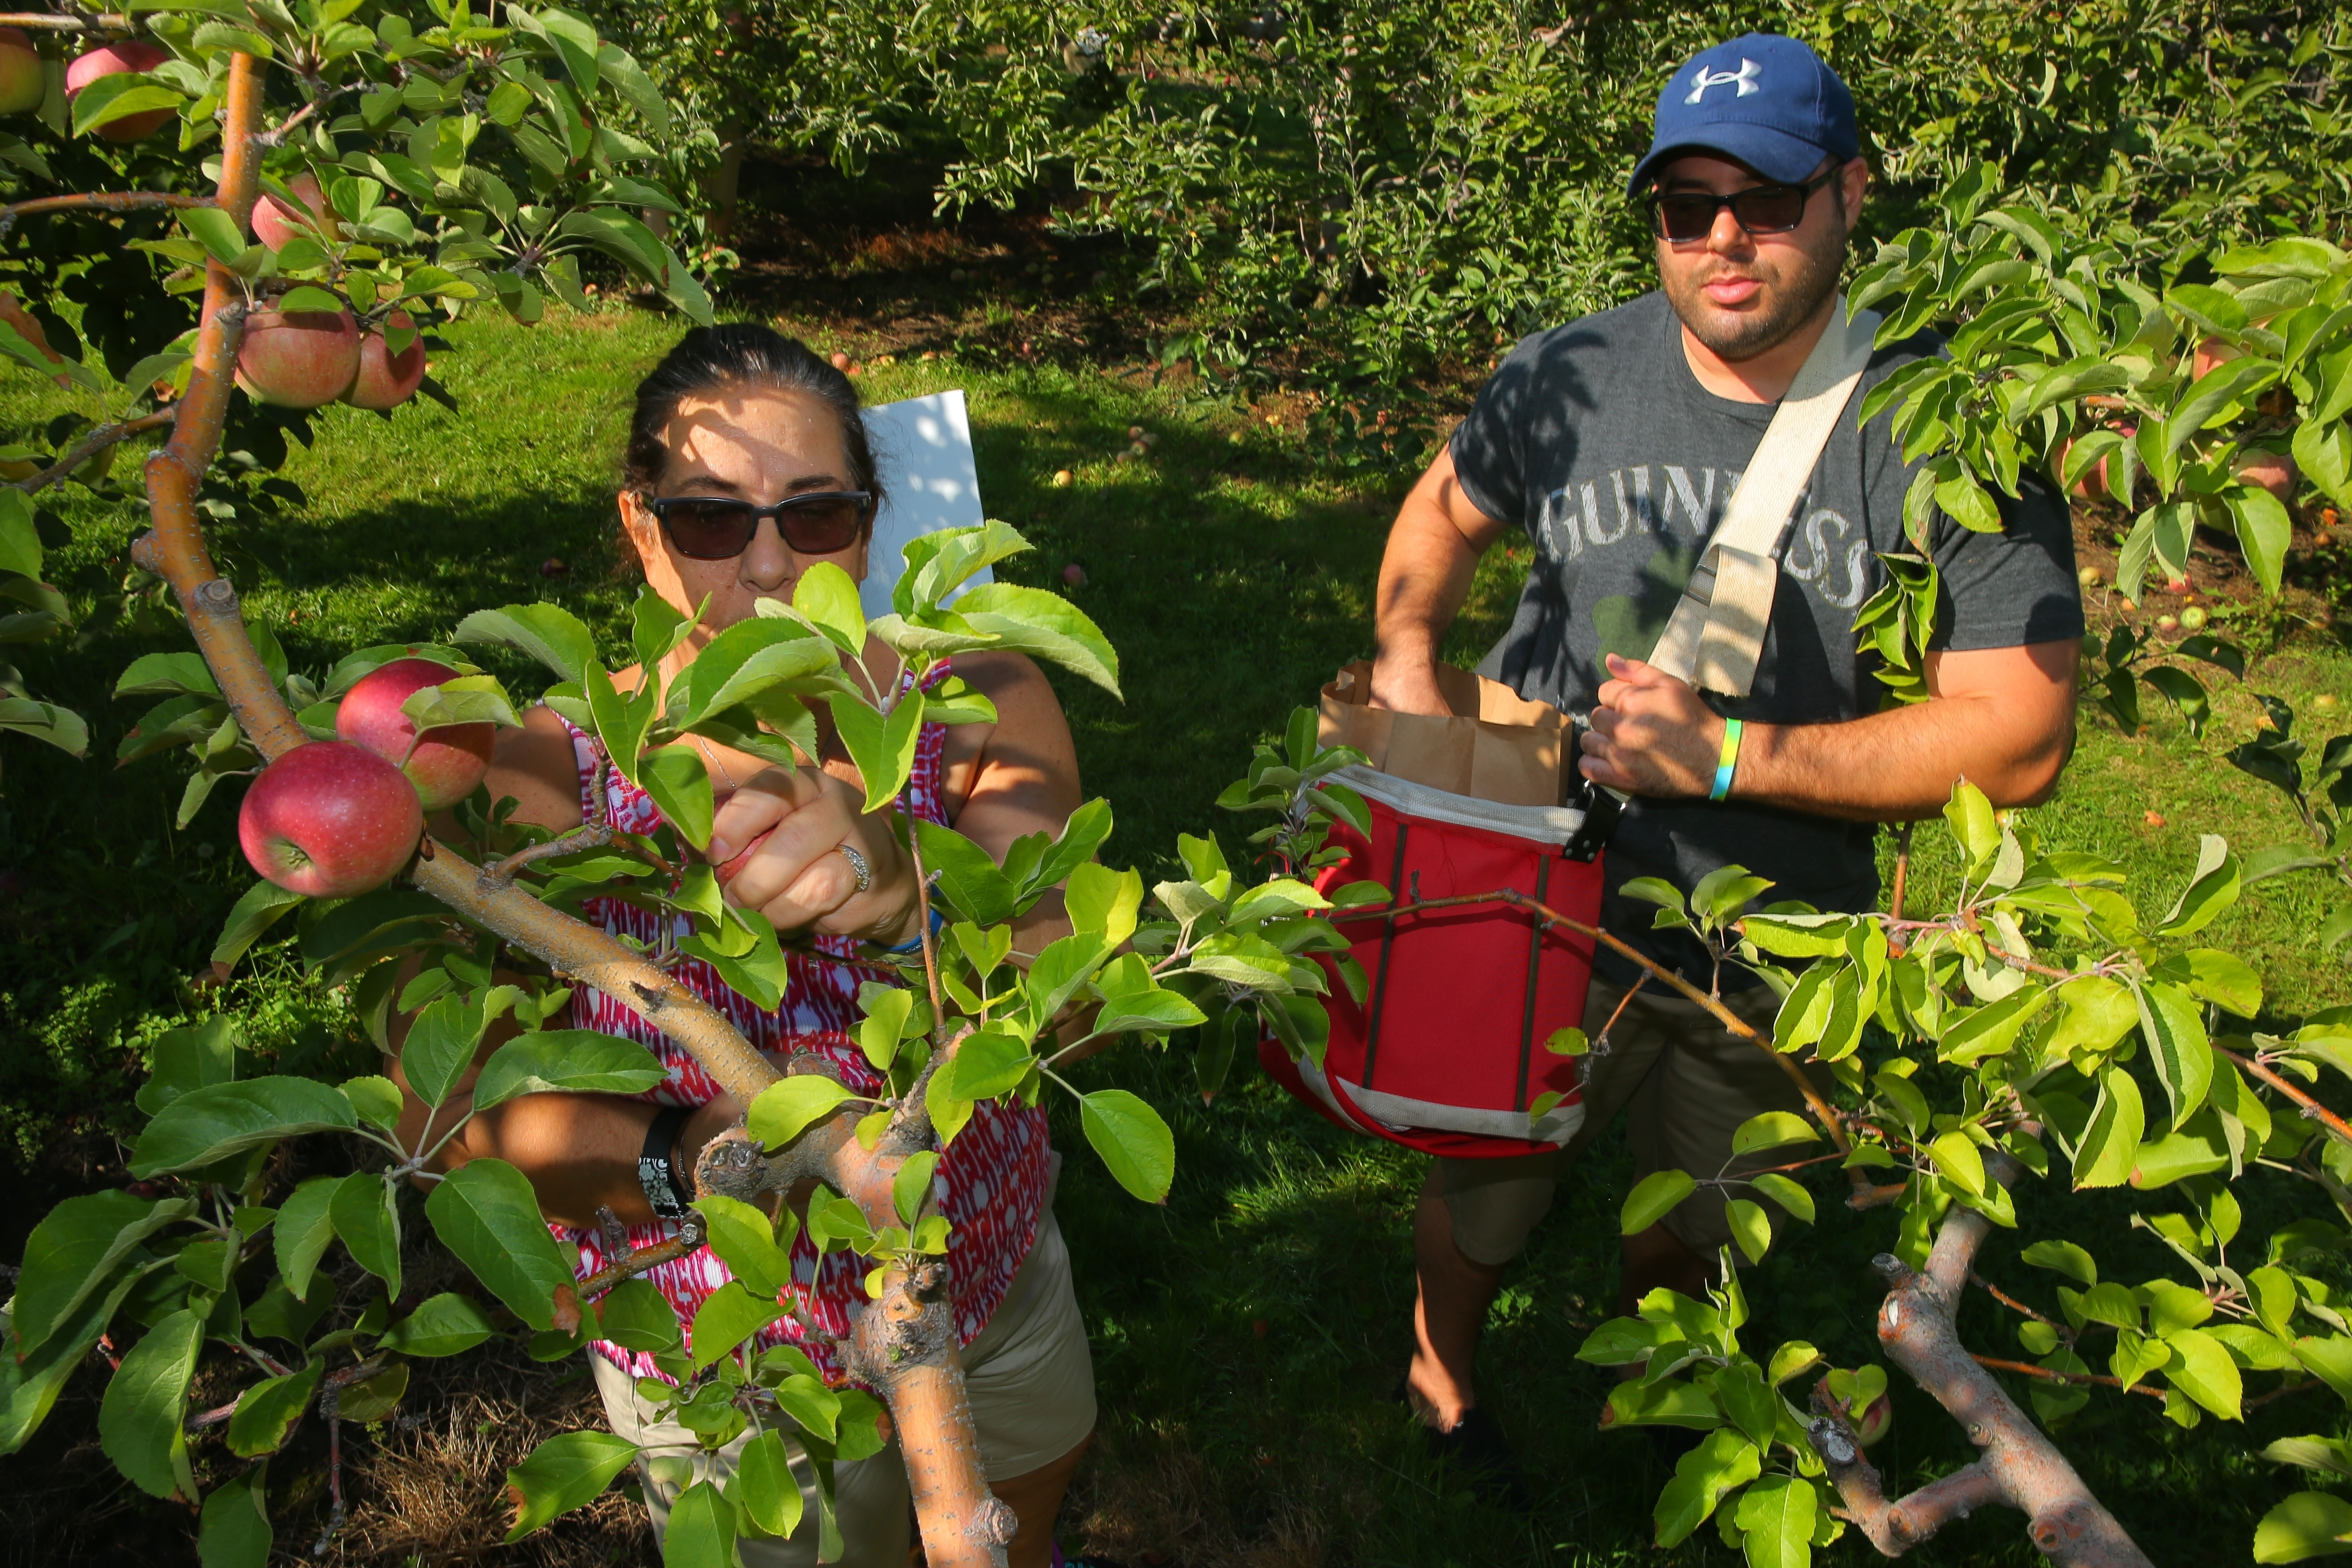 Donna Mang and her son, Jeff, of Kenmore, pick apples at Blackman Homestead Farms in Lockport last week. As a result of the drought, this year's apples are smaller, but sweeter, Niagara County growers say.